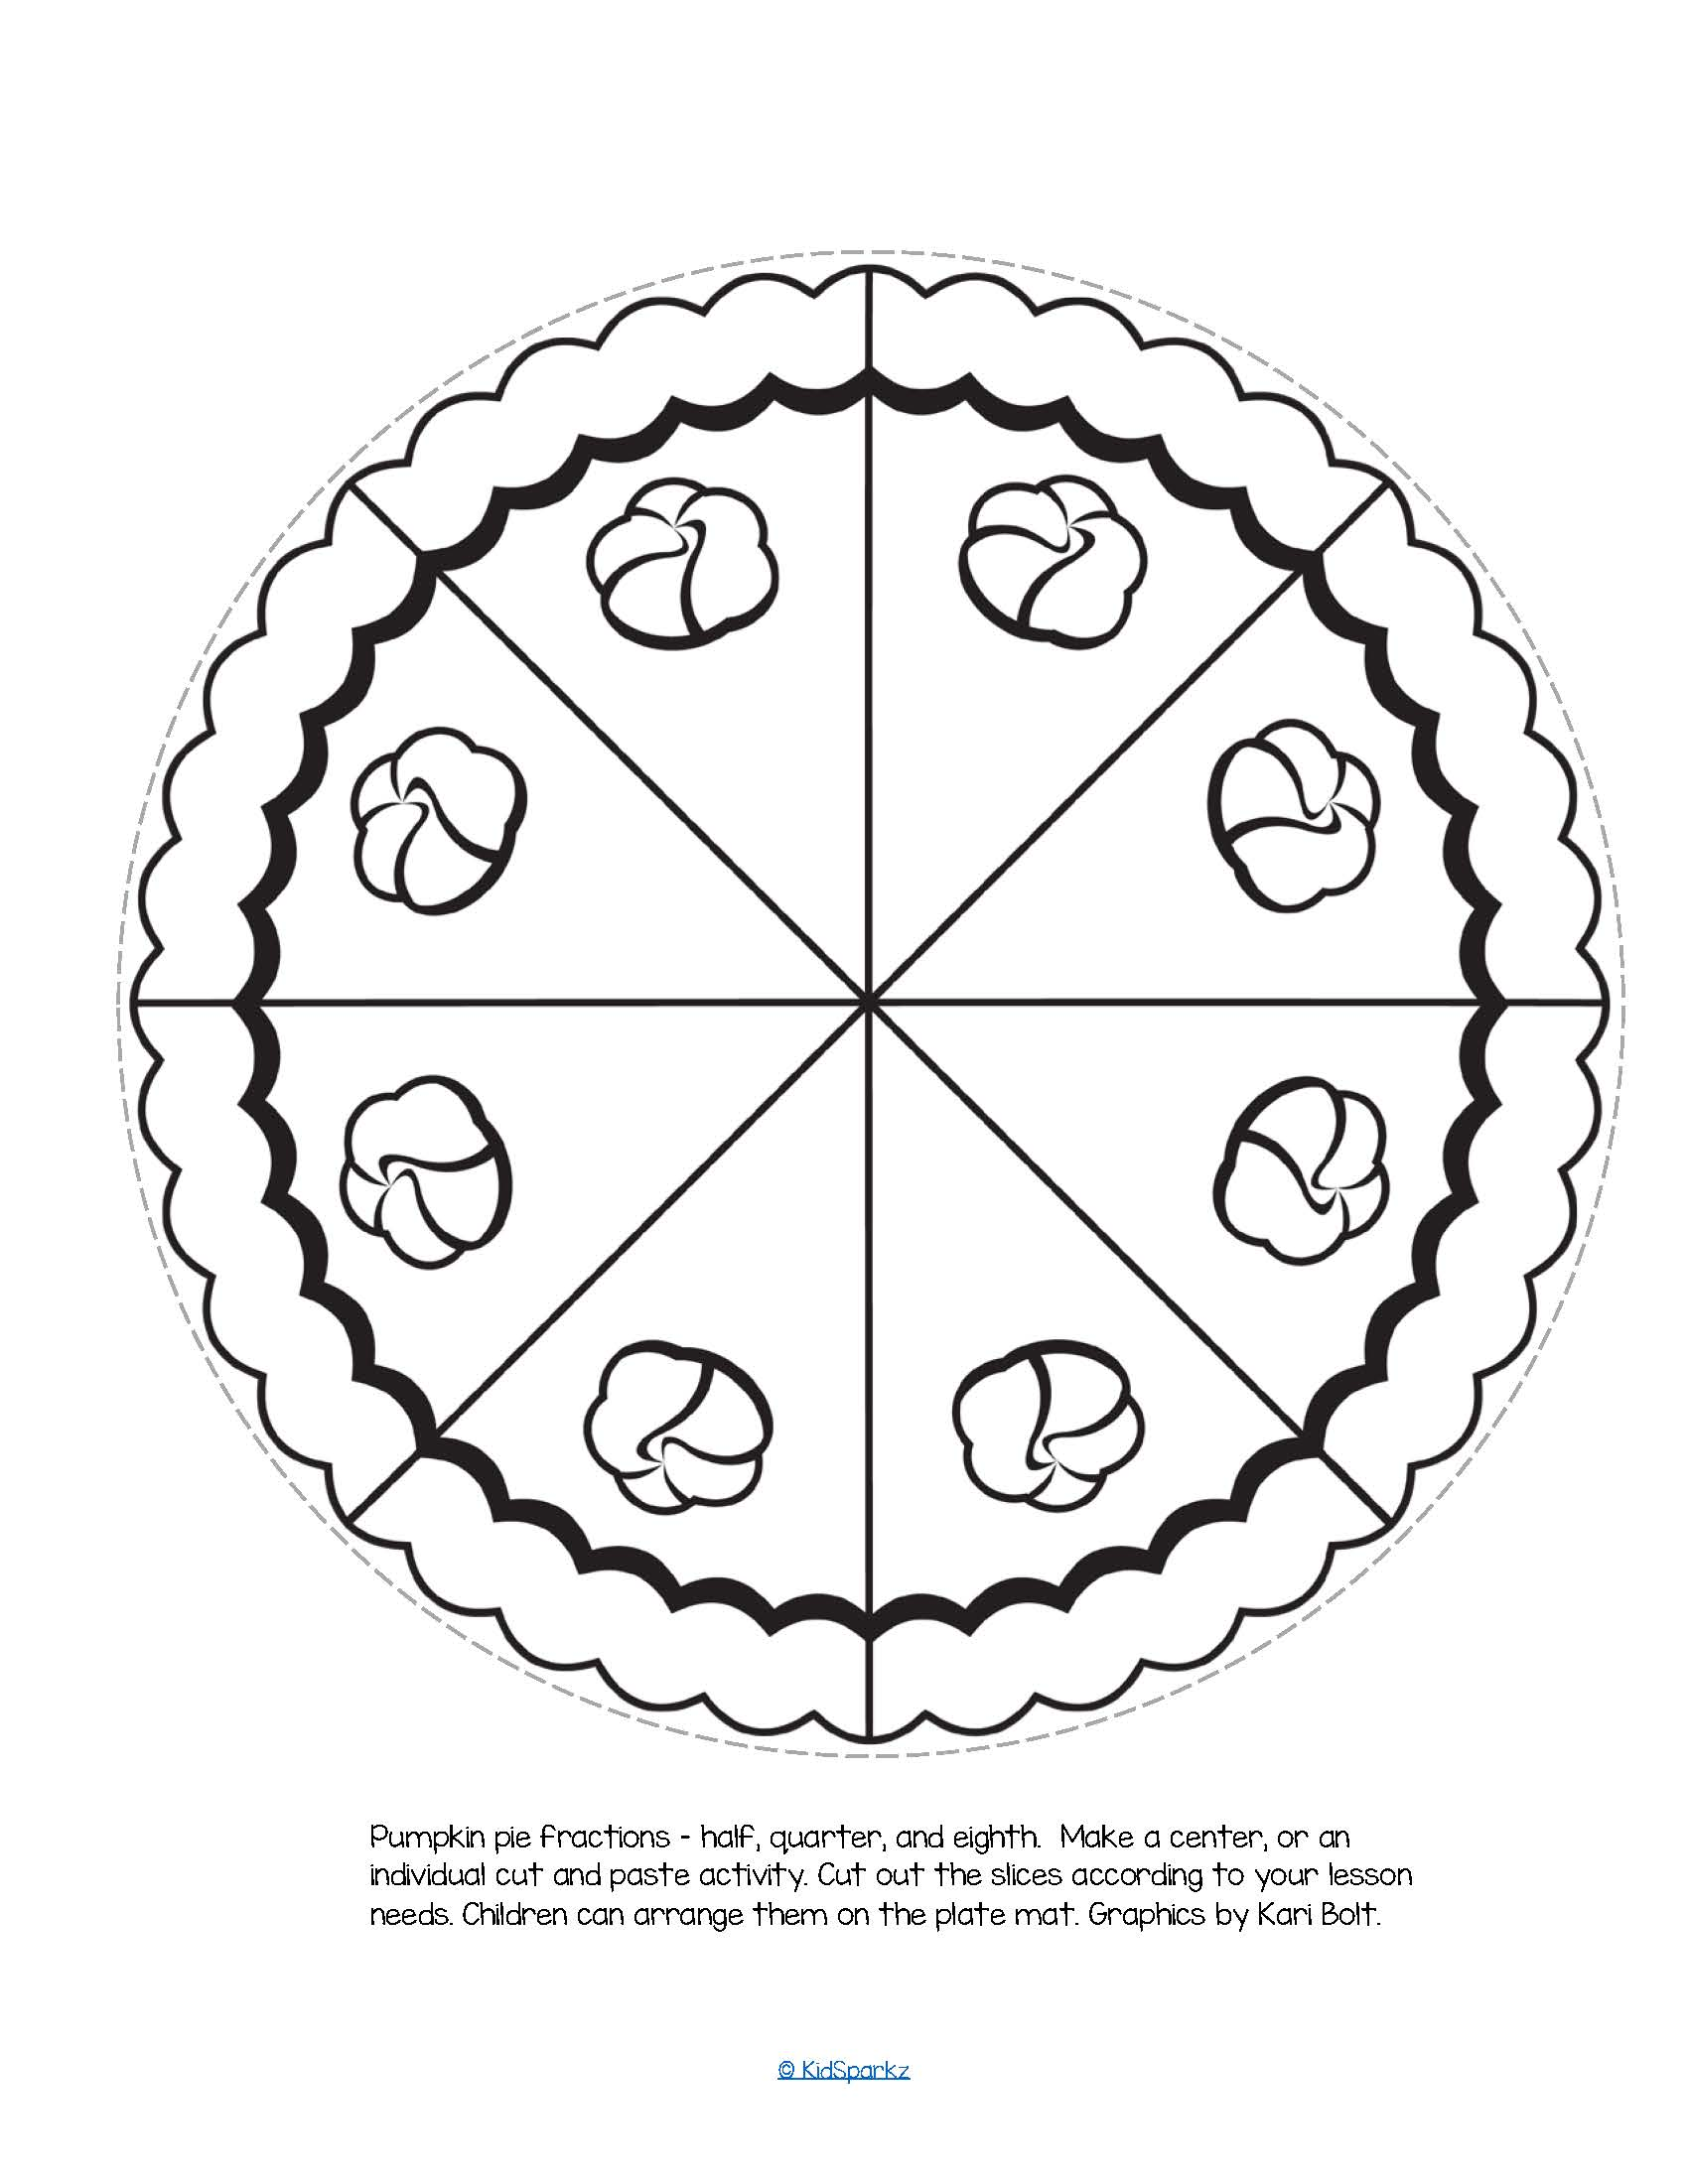 Pumpkin pie fractions b/w – half, quarter, and eighth. Make a center, or an individual cut and paste activity.